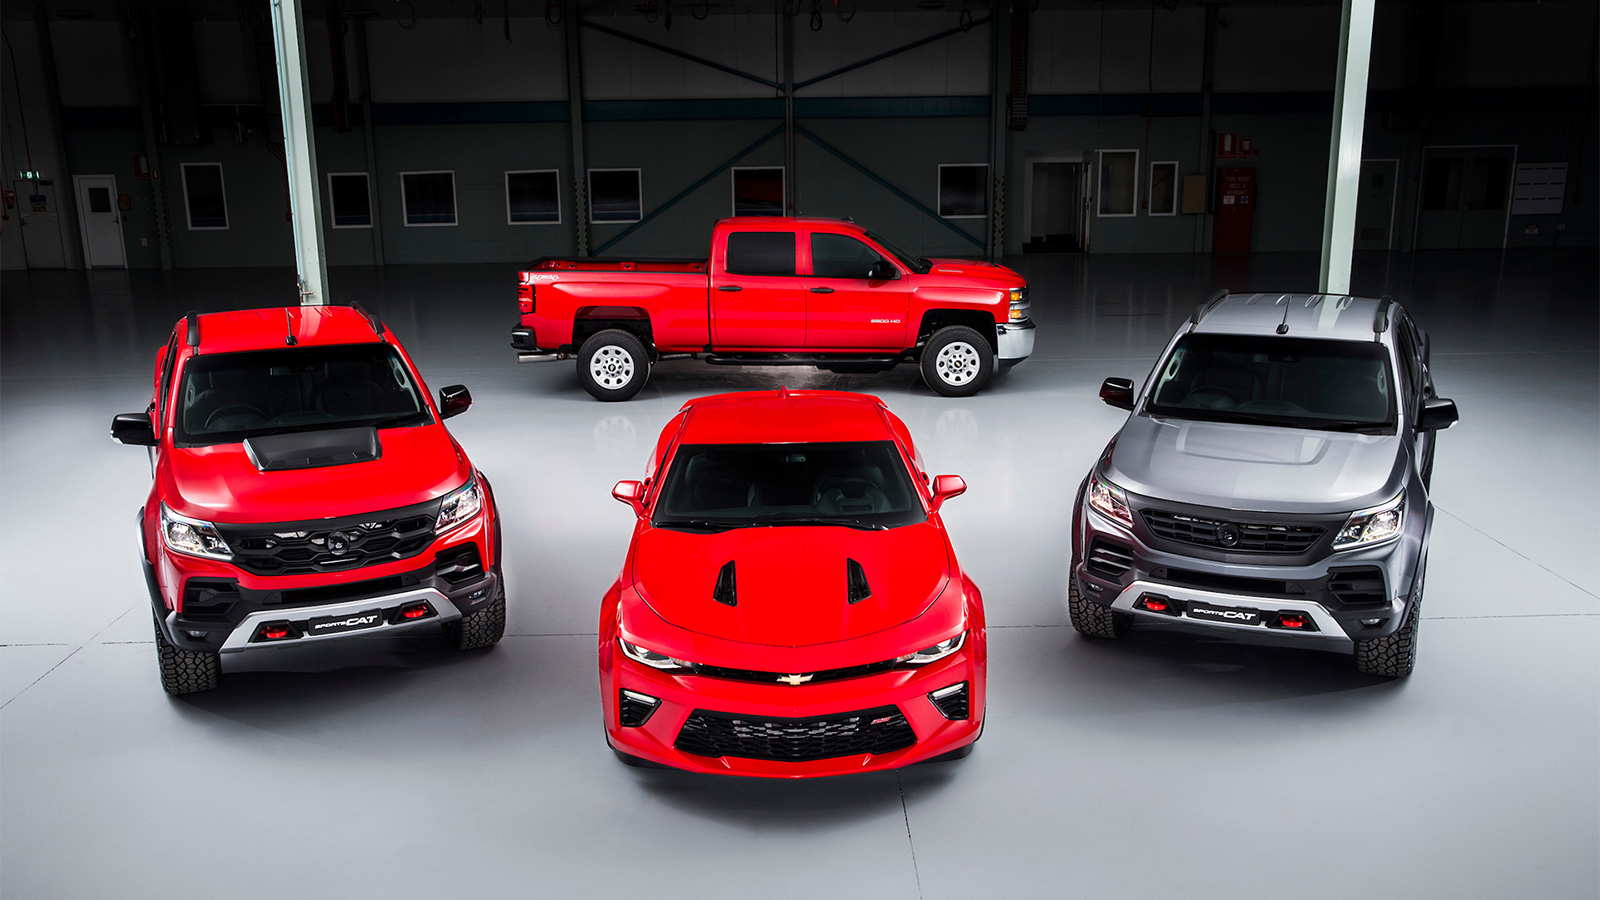 GM Holden and HSV Strike New Partnership